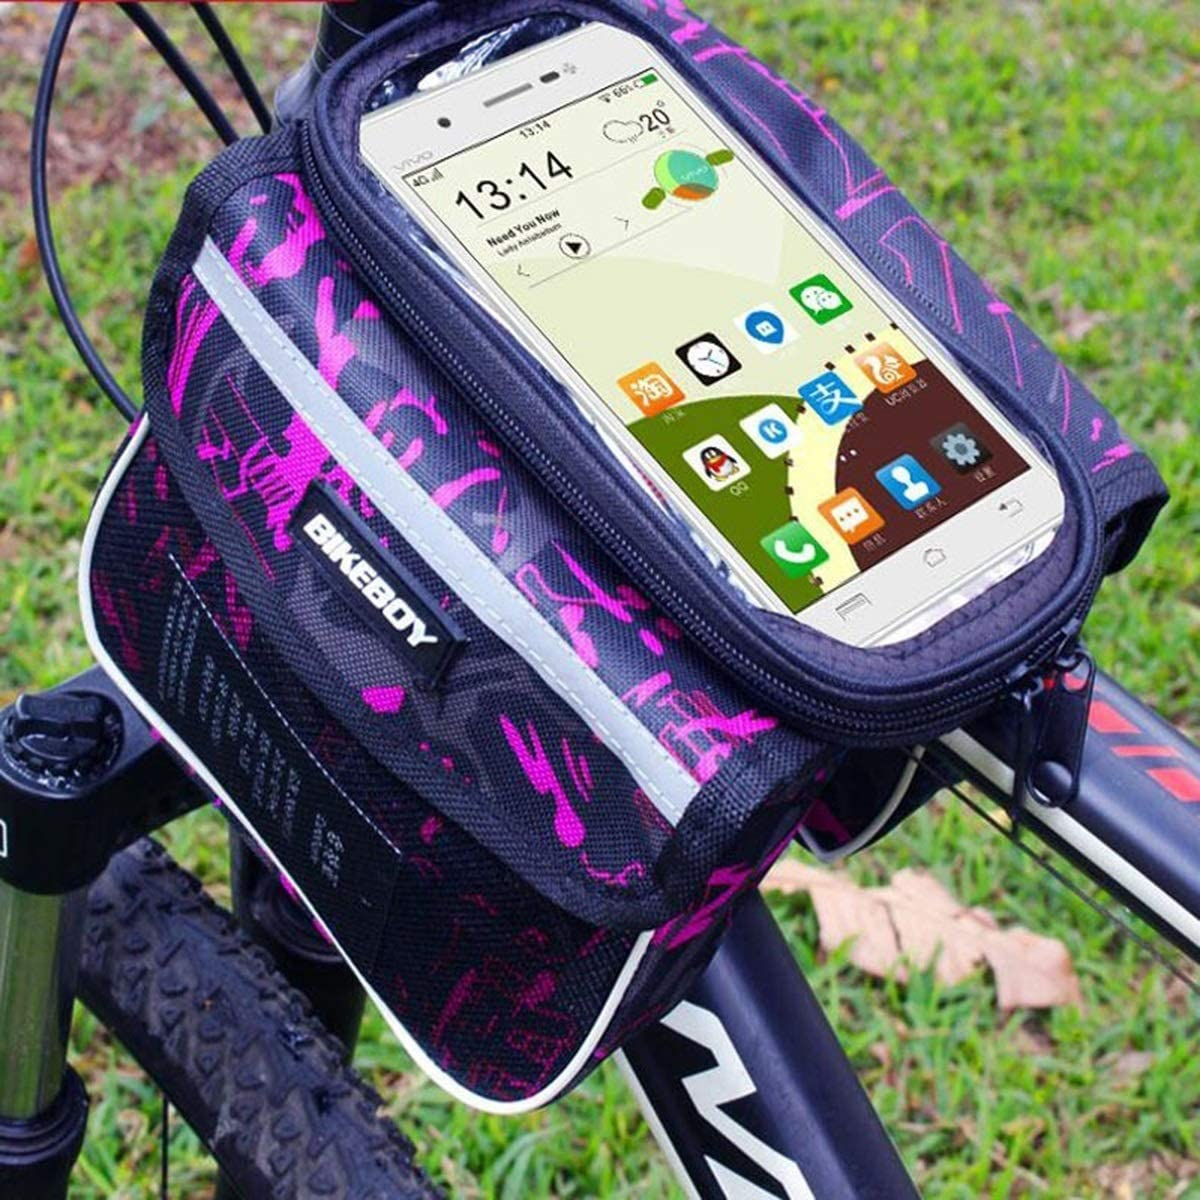 Touch Screen Retained Waterproof Bicycle Bags Cycling 6.2inch less Mobile Phone Bags Pouch Bike Frame Front Head Top Tube Bags